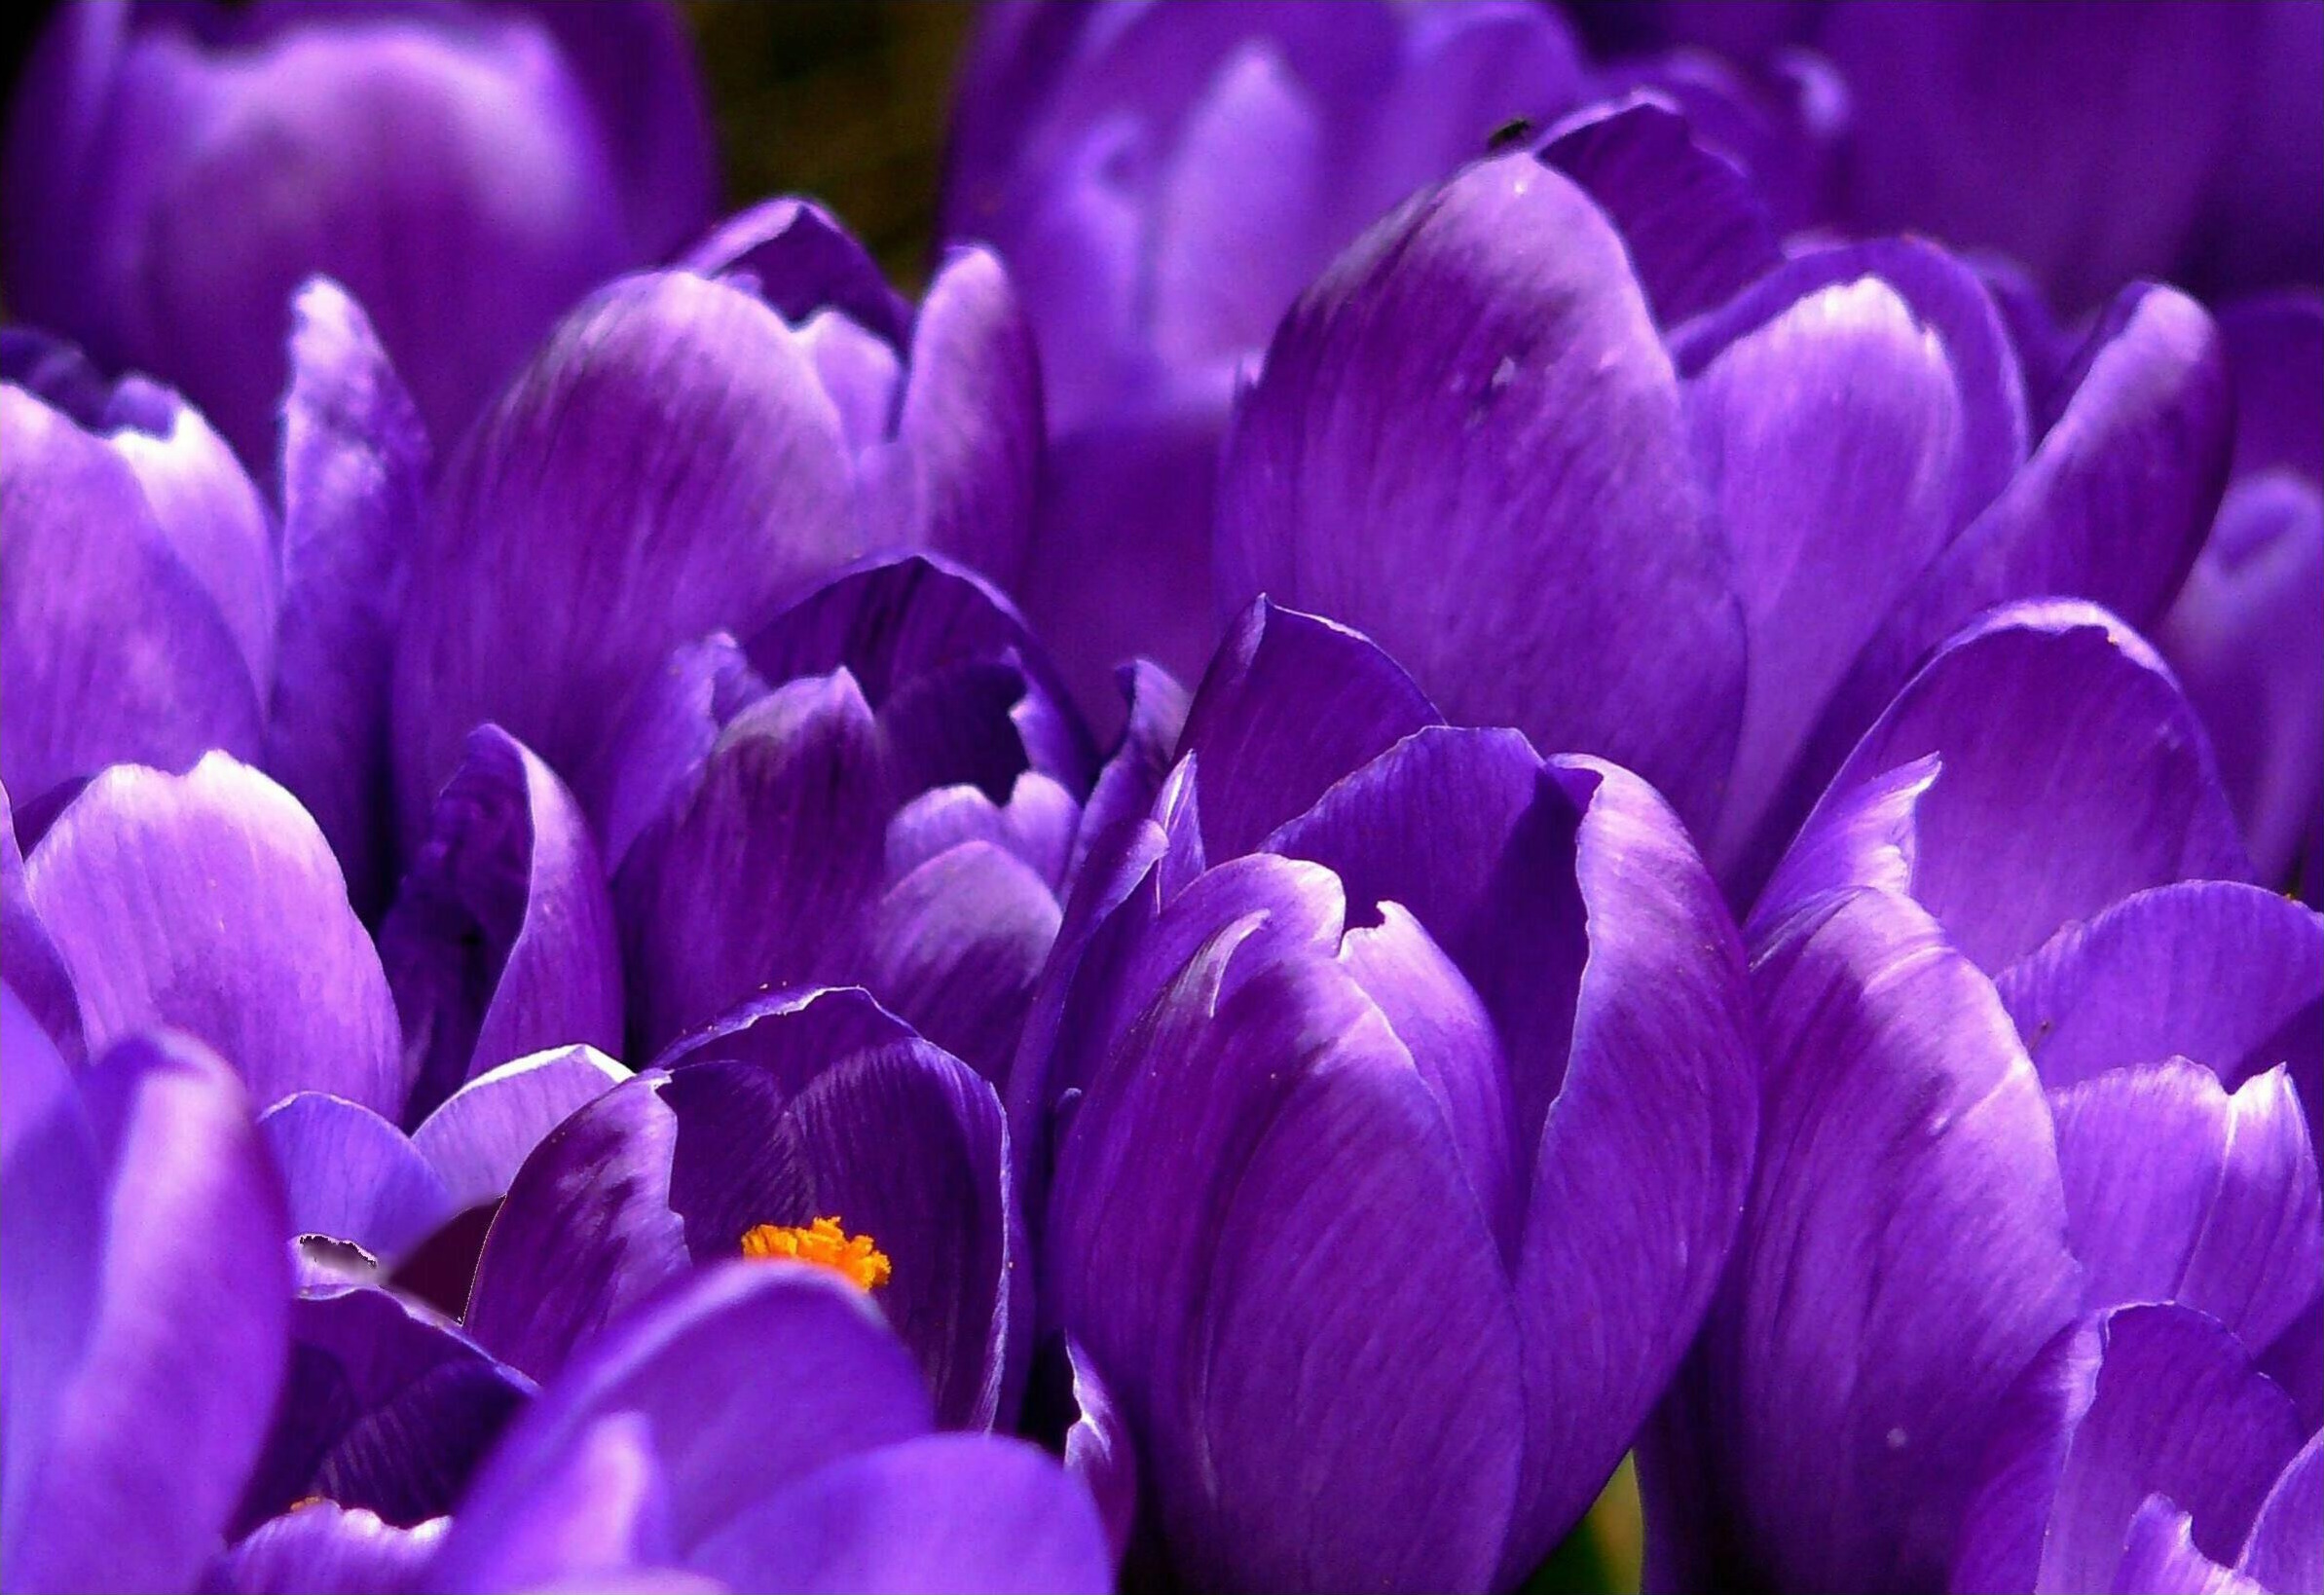 Close Up Photo Of Purple Clustered Flower 183 Free Stock Photo